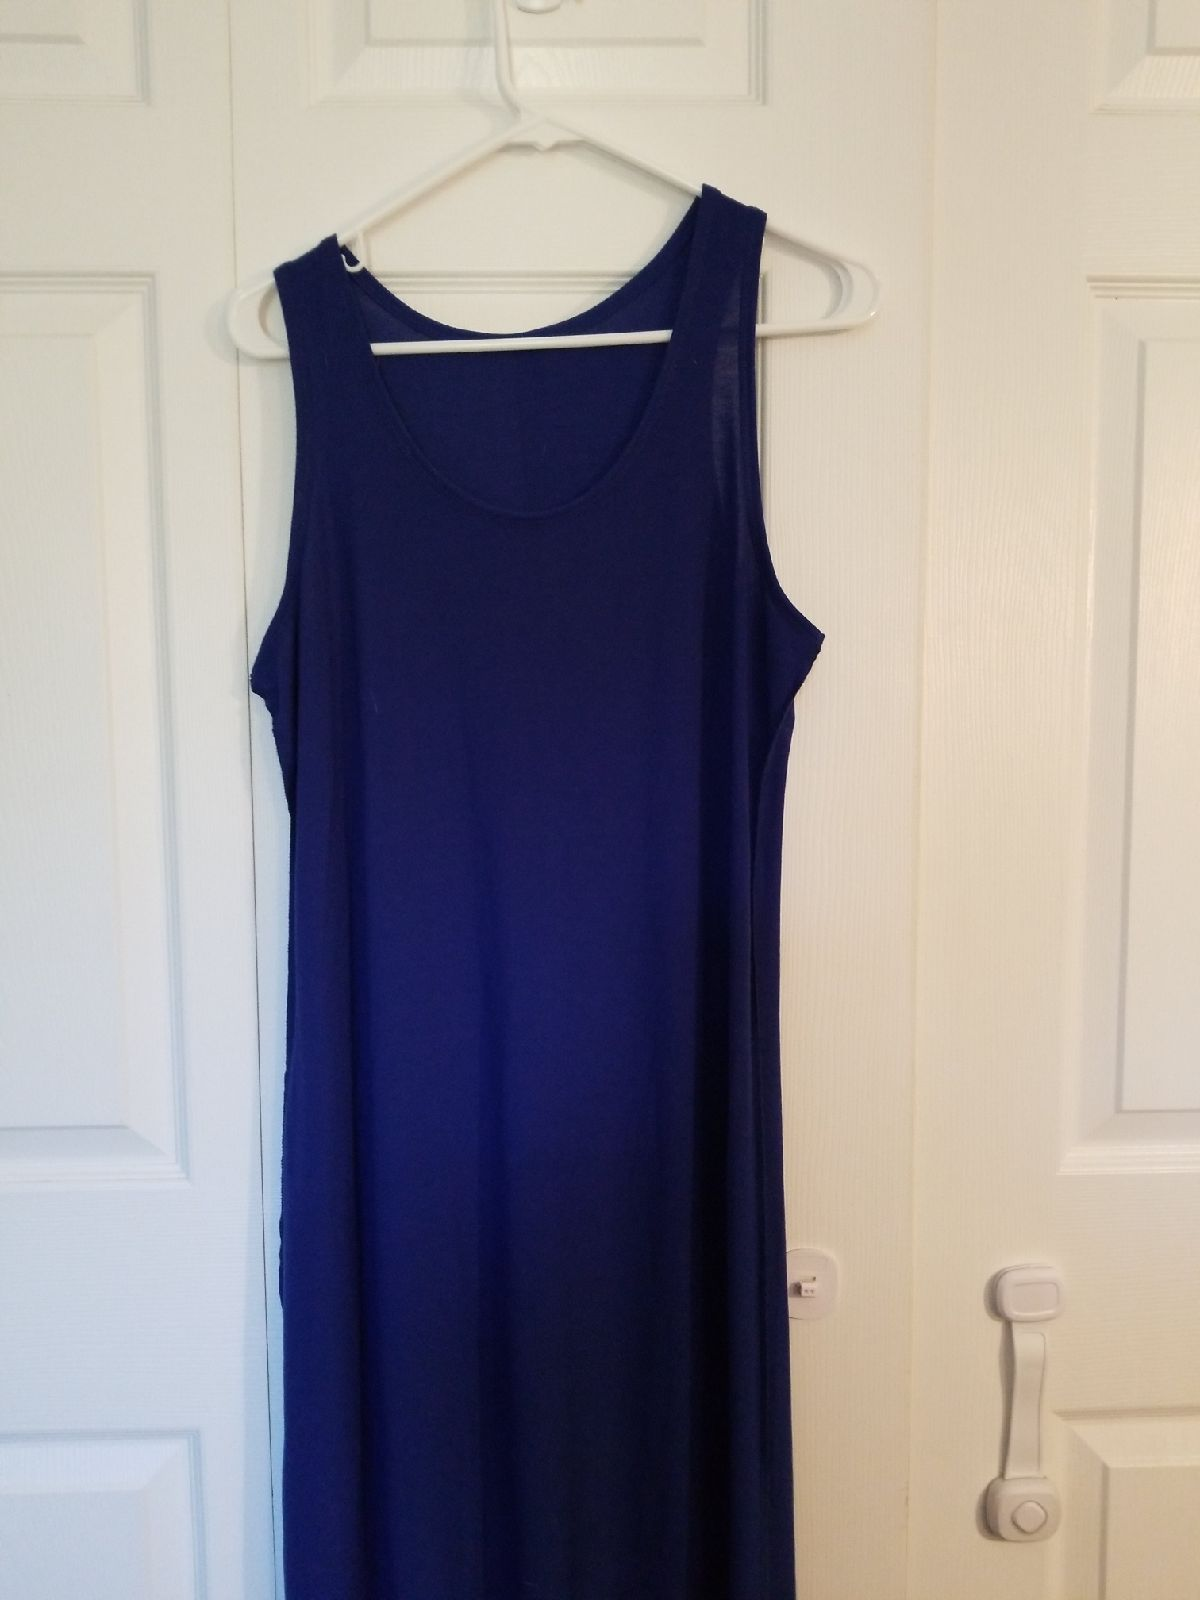 Navy Blue Tank Top Maxi Dress Does Not Have Tags But I Have Never Worn It I Mistakenly Took Them Off Thinking Top Maxi Dresses Maxi Dress Navy Blue Tank Top [ 1600 x 1200 Pixel ]